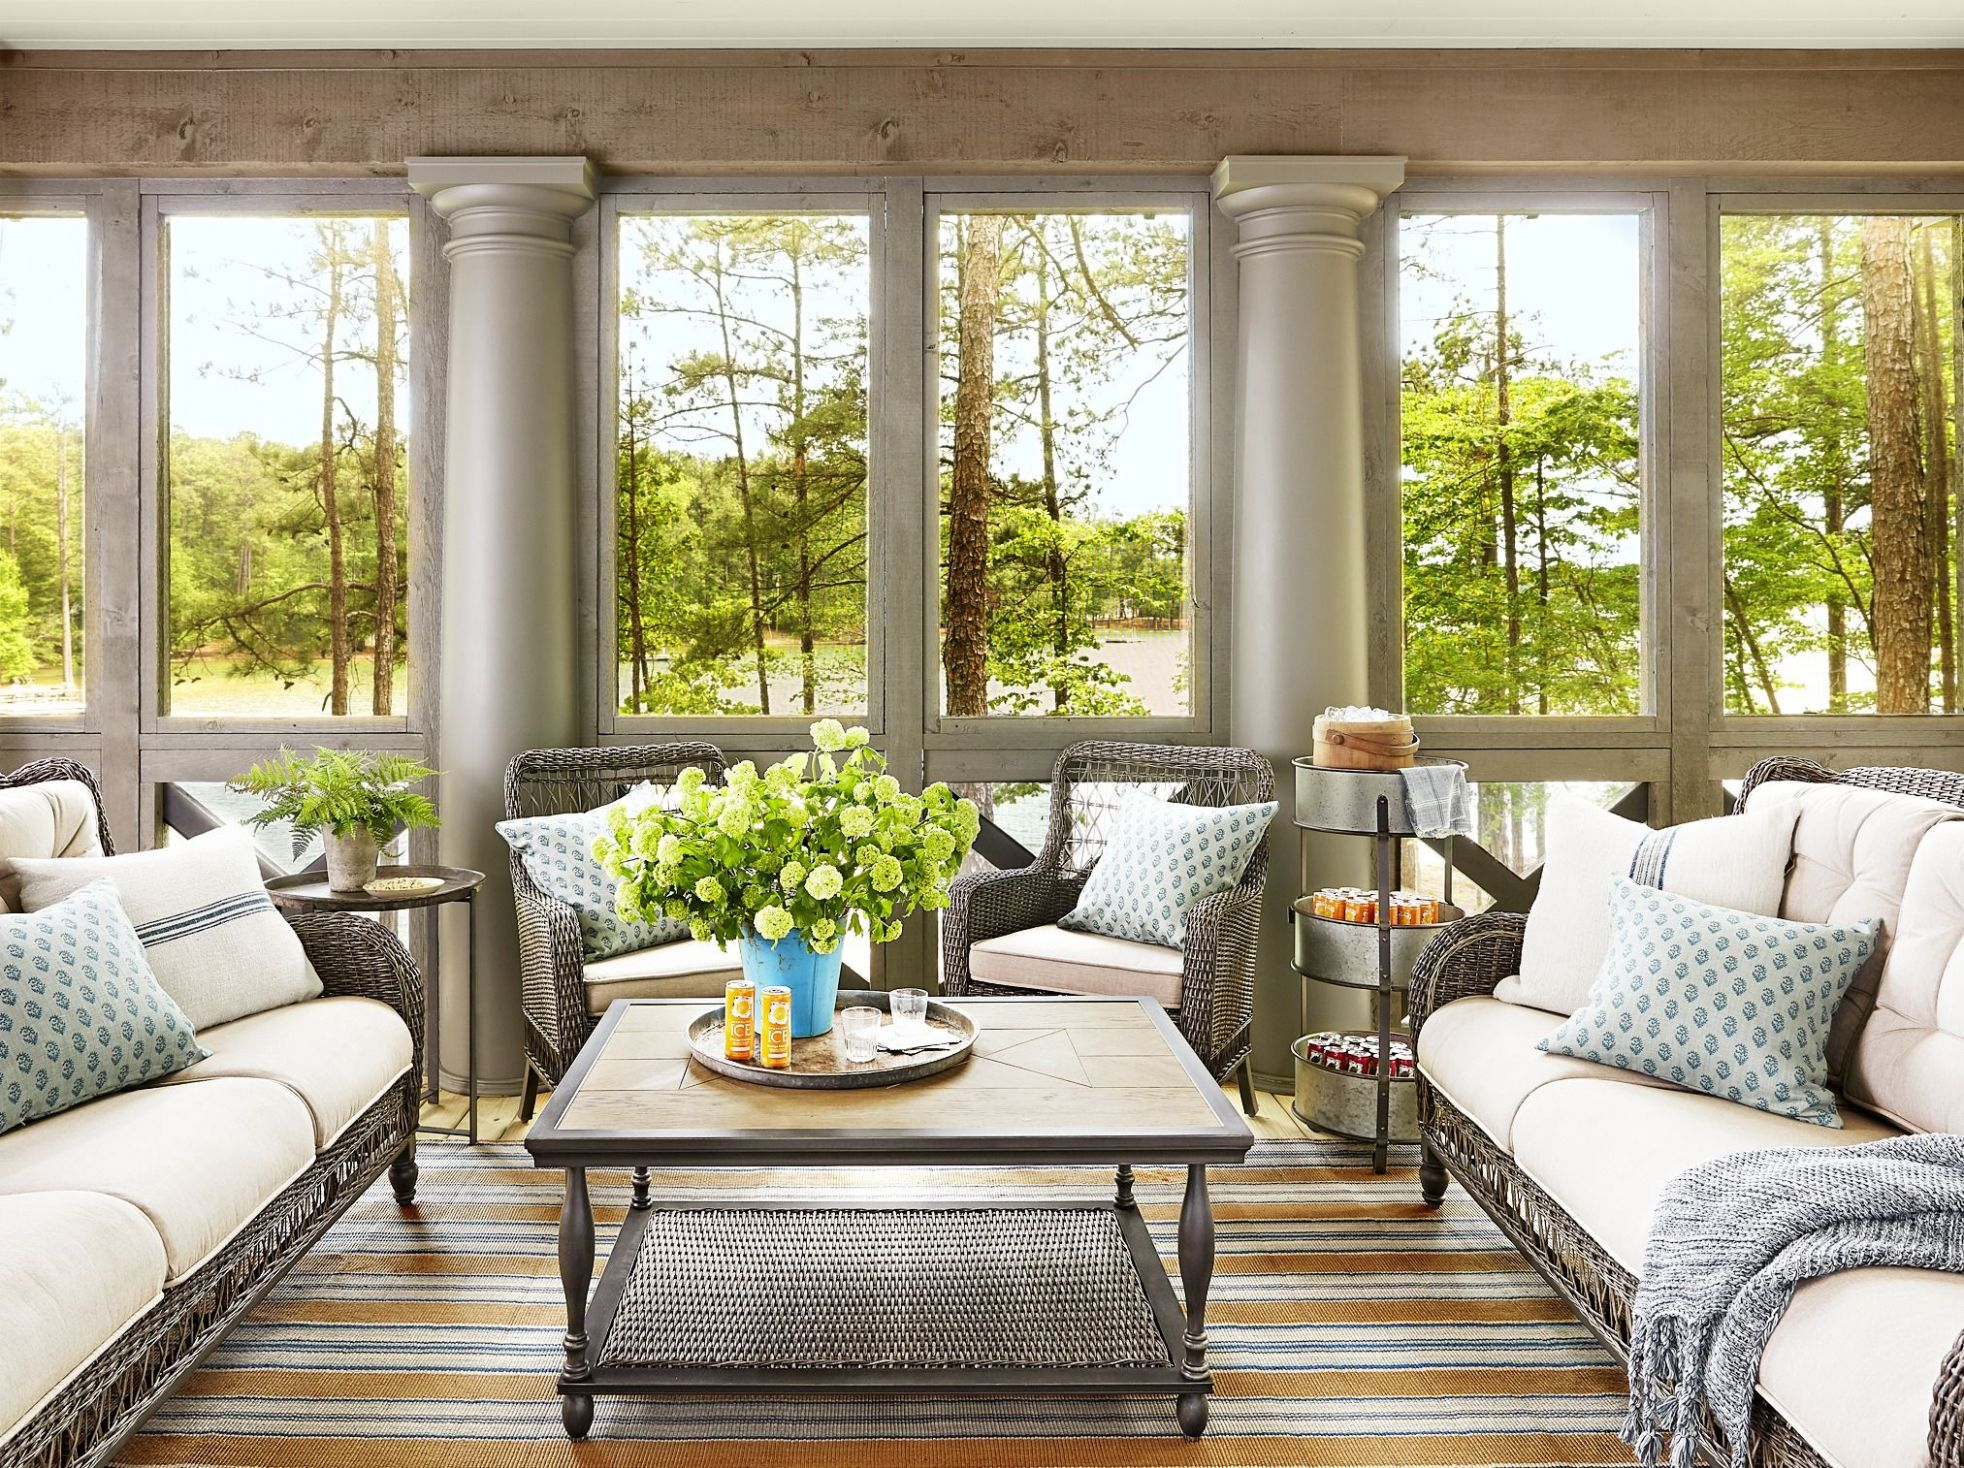 12 Sunroom Decorating Ideas - Best Designs for Sun Rooms - long sunroom ideas